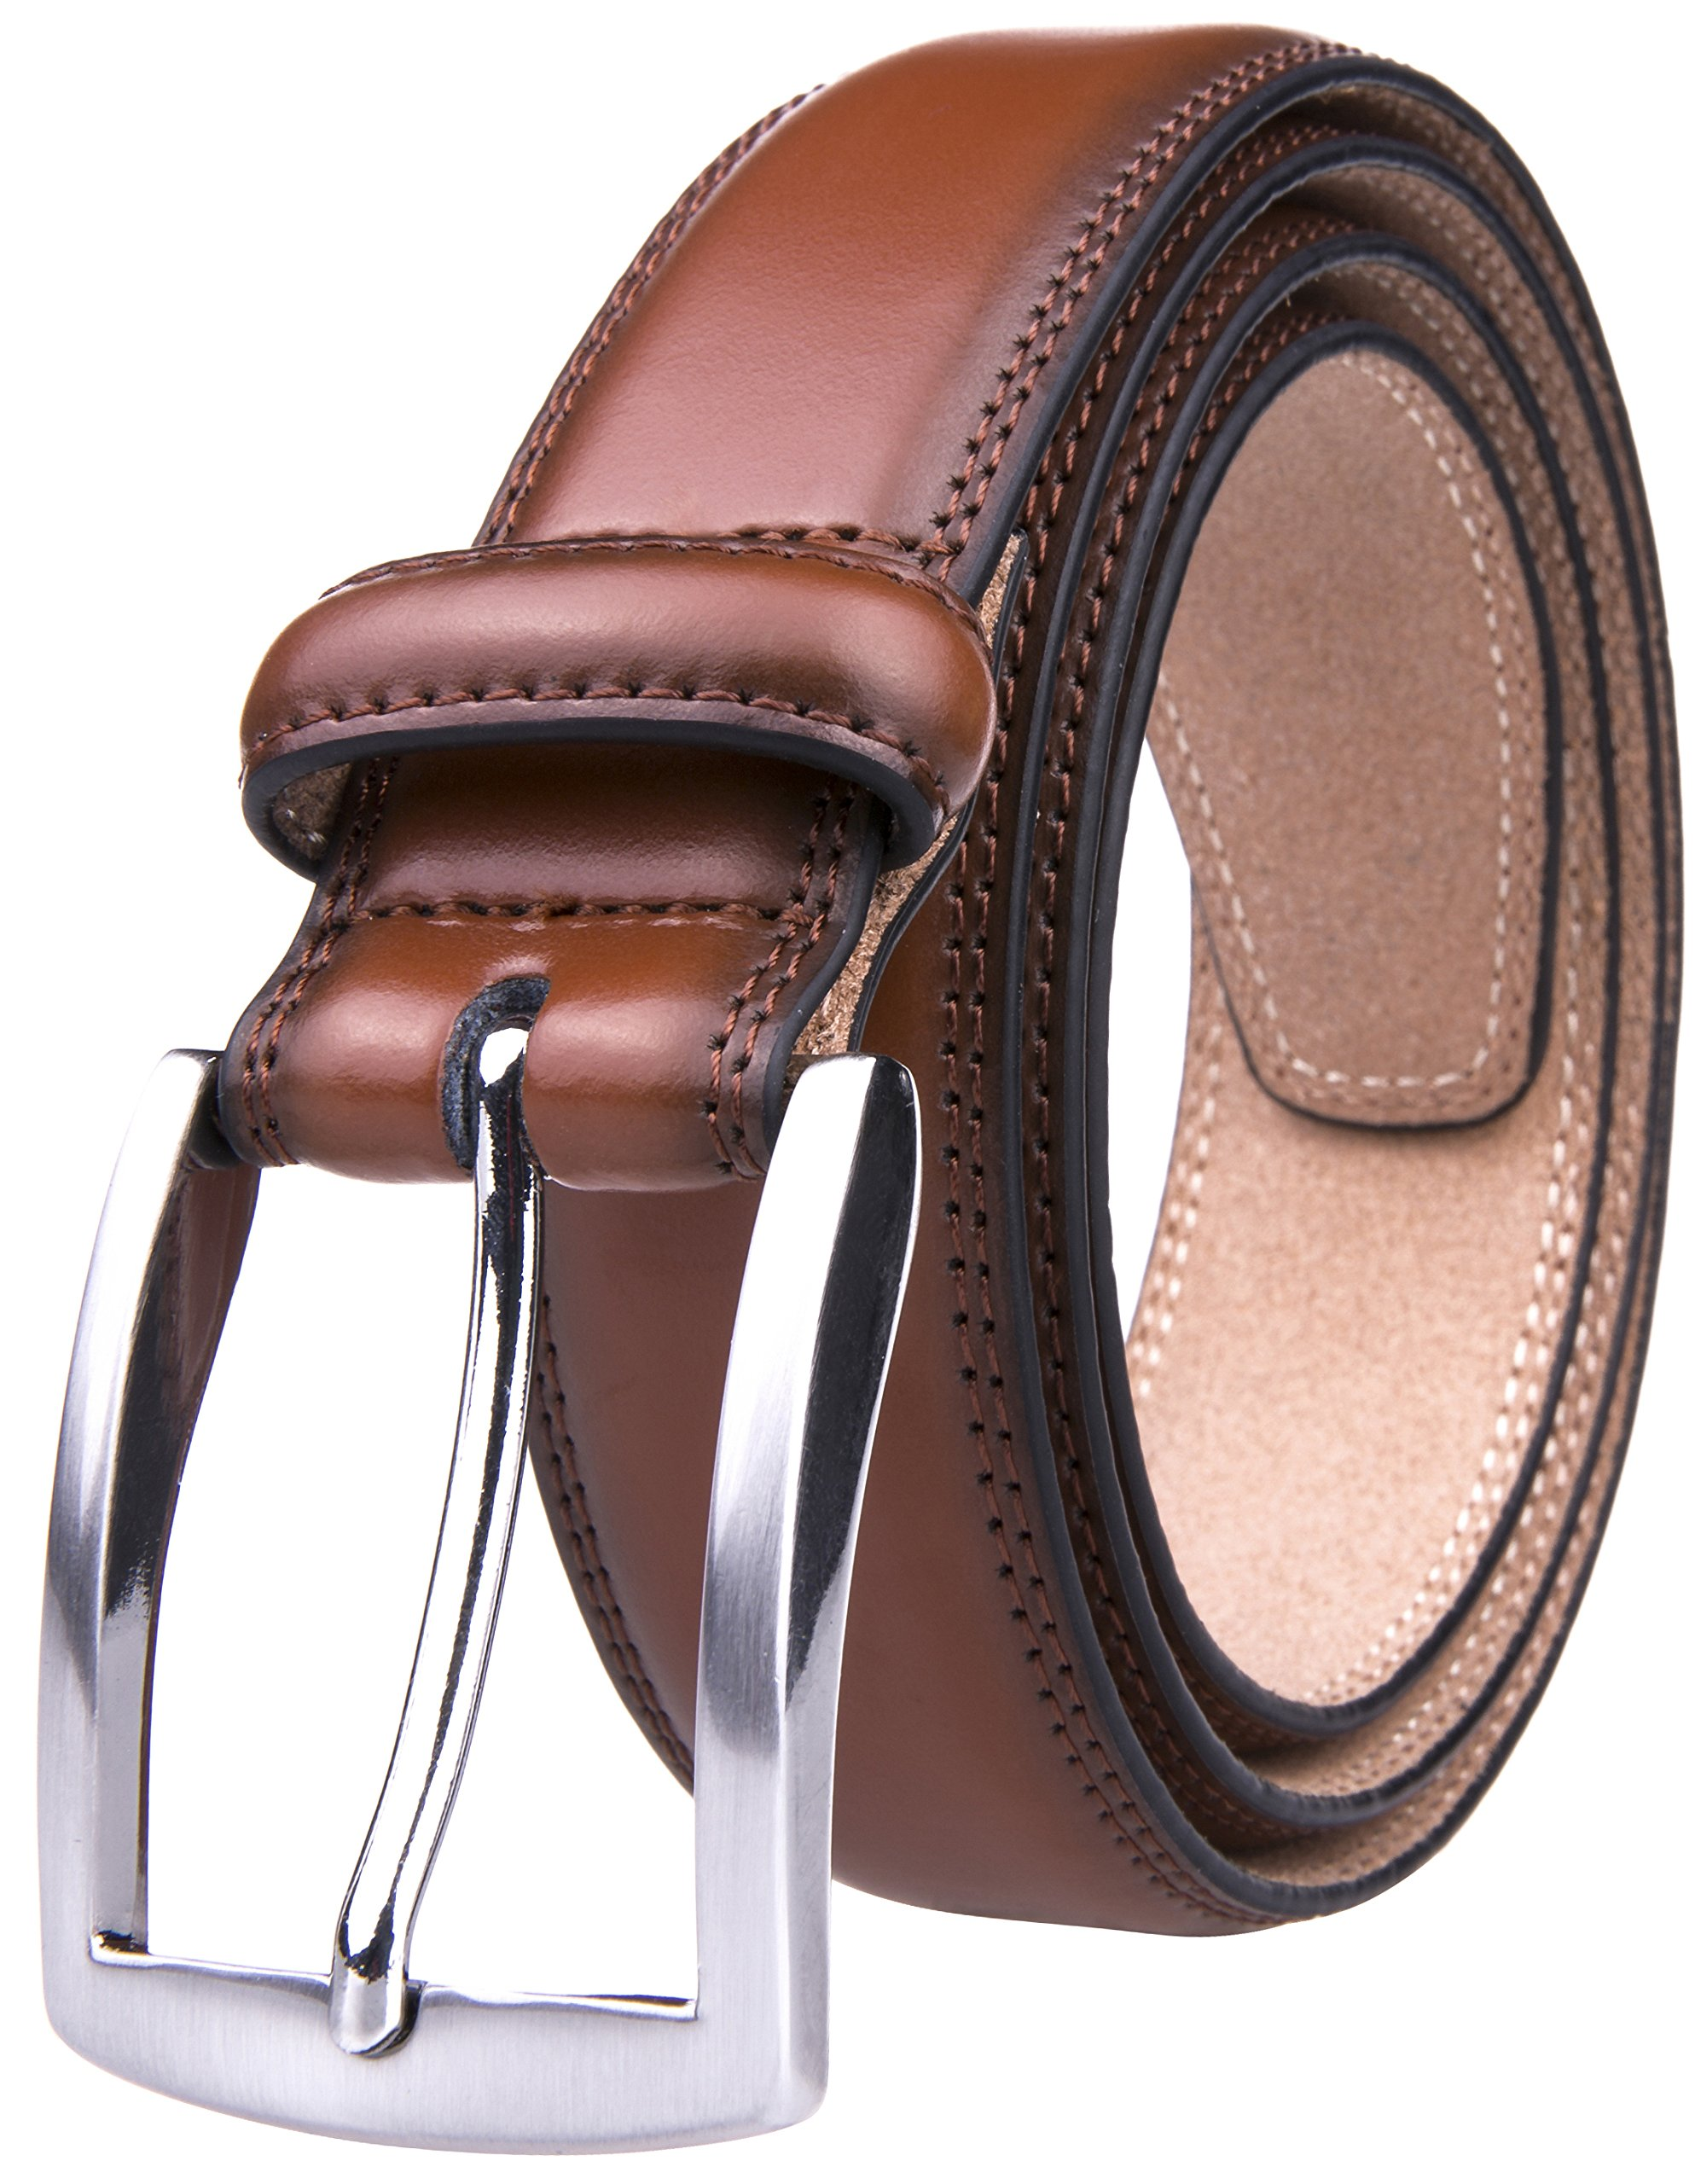 Fabio Valenti Men's 32MM Casual Belt with Pin Buckle (32, Brown)